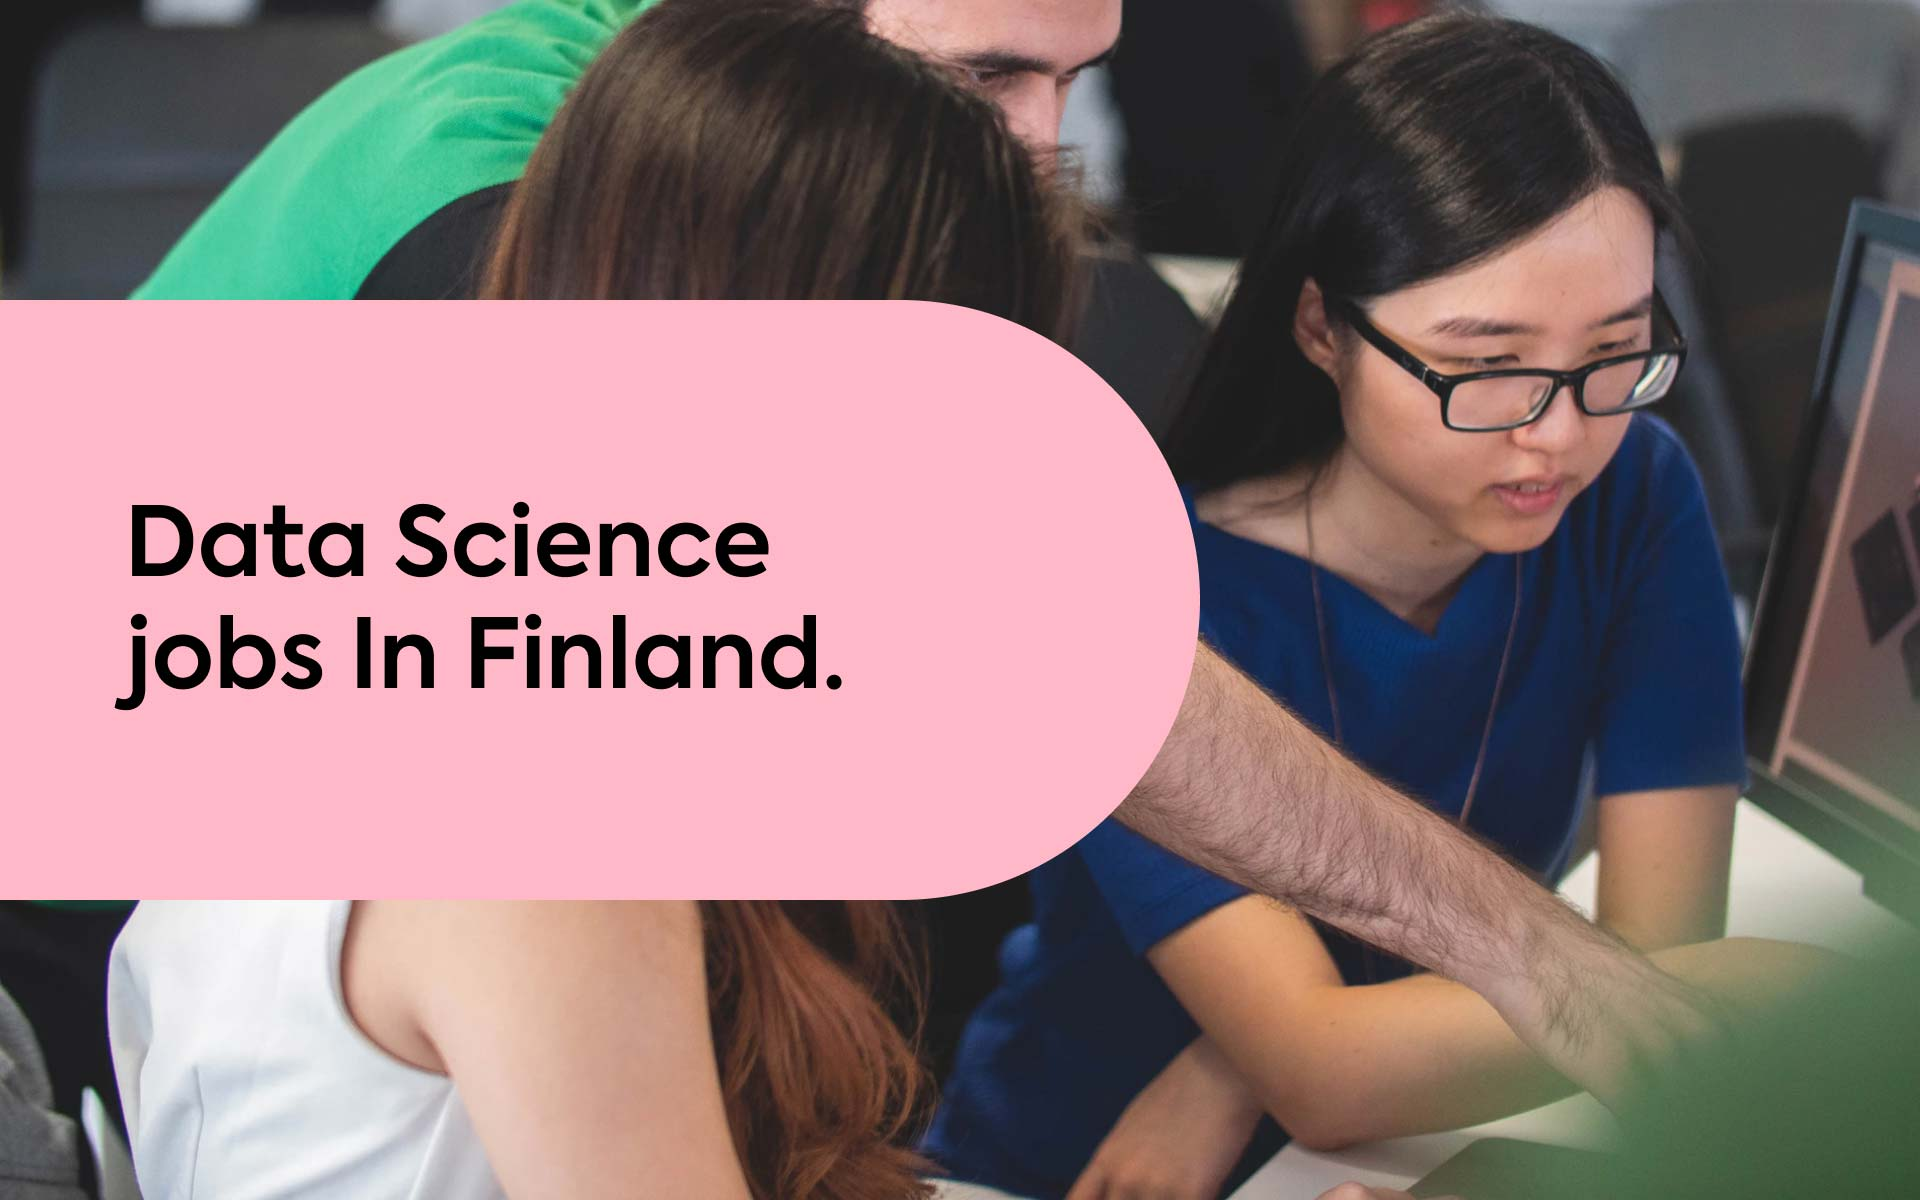 data science jobs in Finland